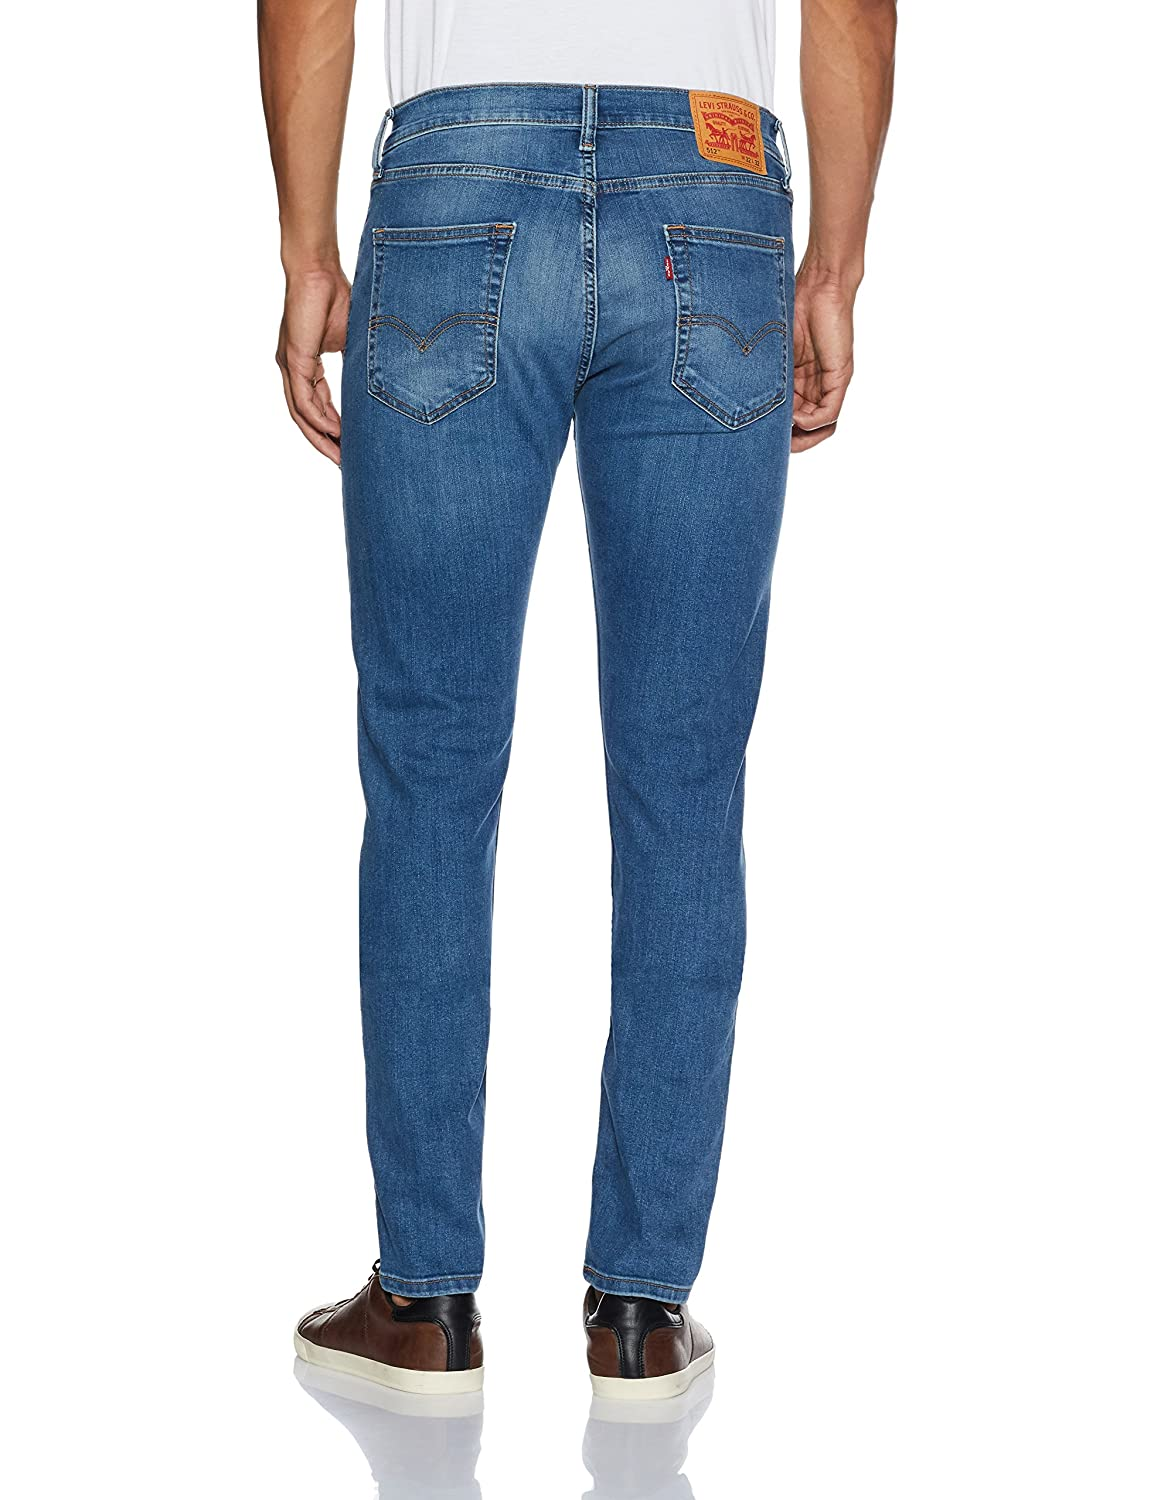 9a298825df9 Levi's Men's (512) Slim Tapered Fit Jeans (36087-0023_Blue_36): Amazon.in:  Clothing & Accessories